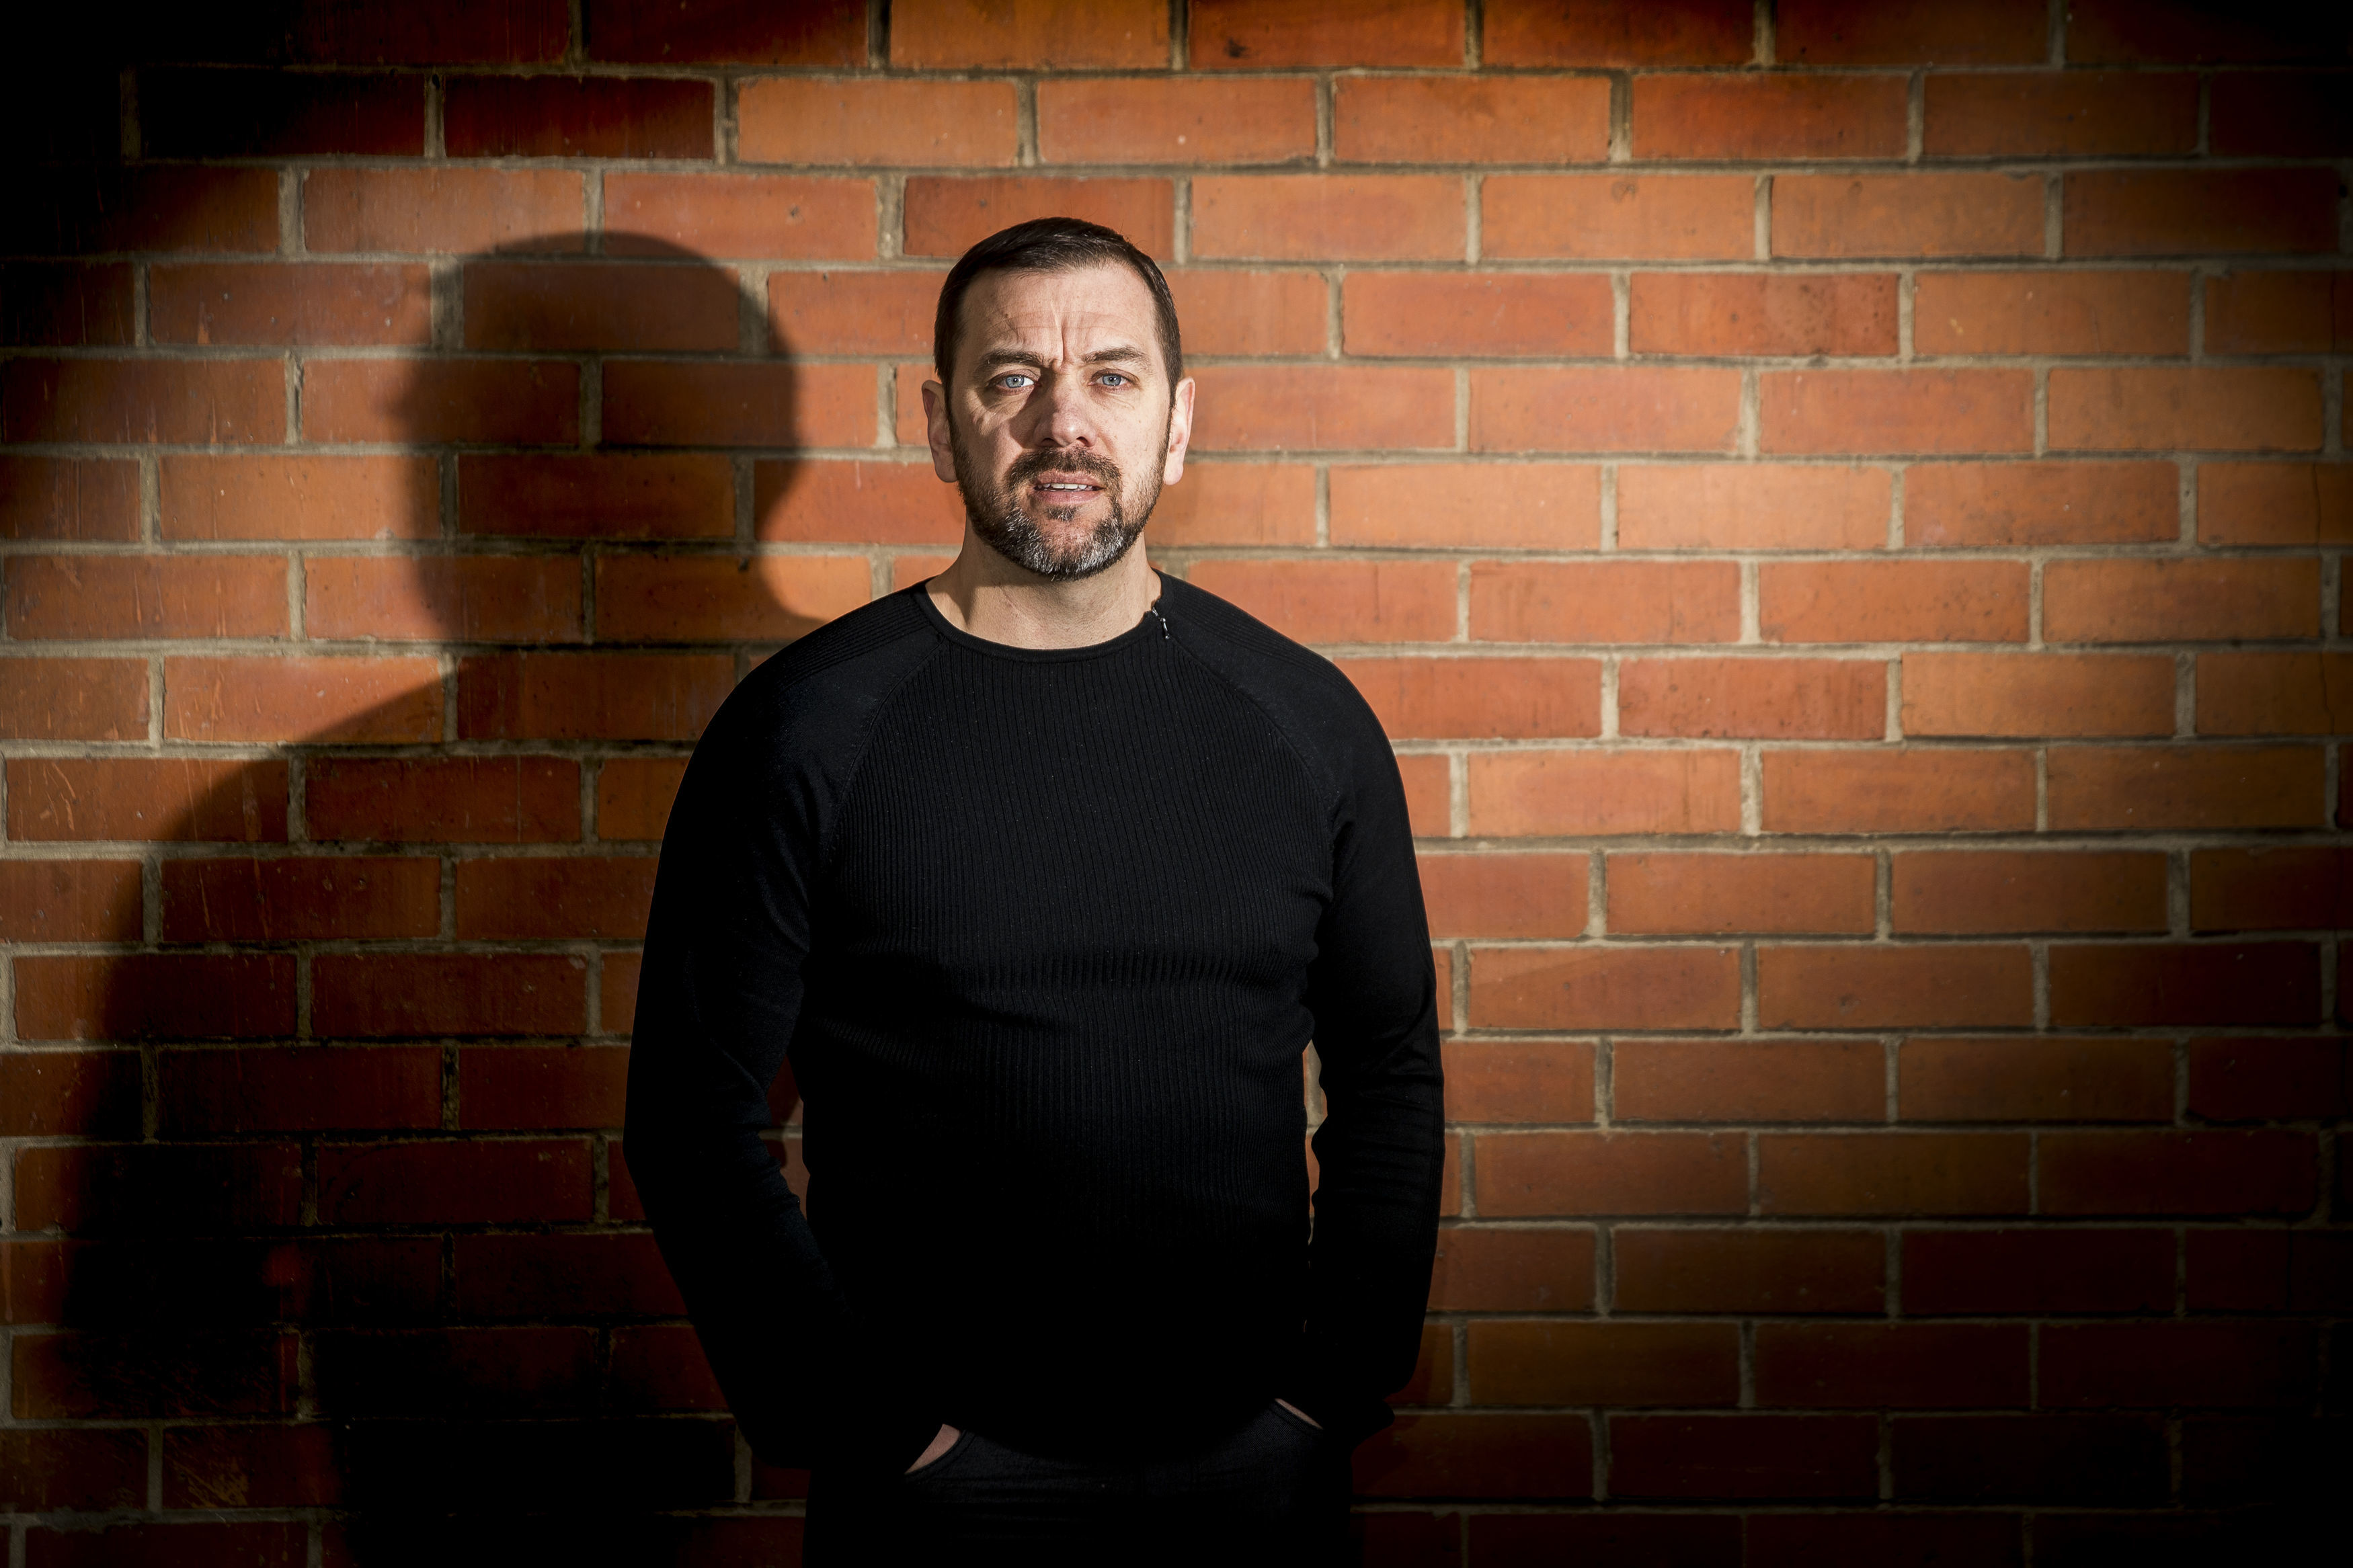 Documentary film maker Sean Murray who has directed a new documentary, Unquiet Graves - the Story of the Glenanne Gang